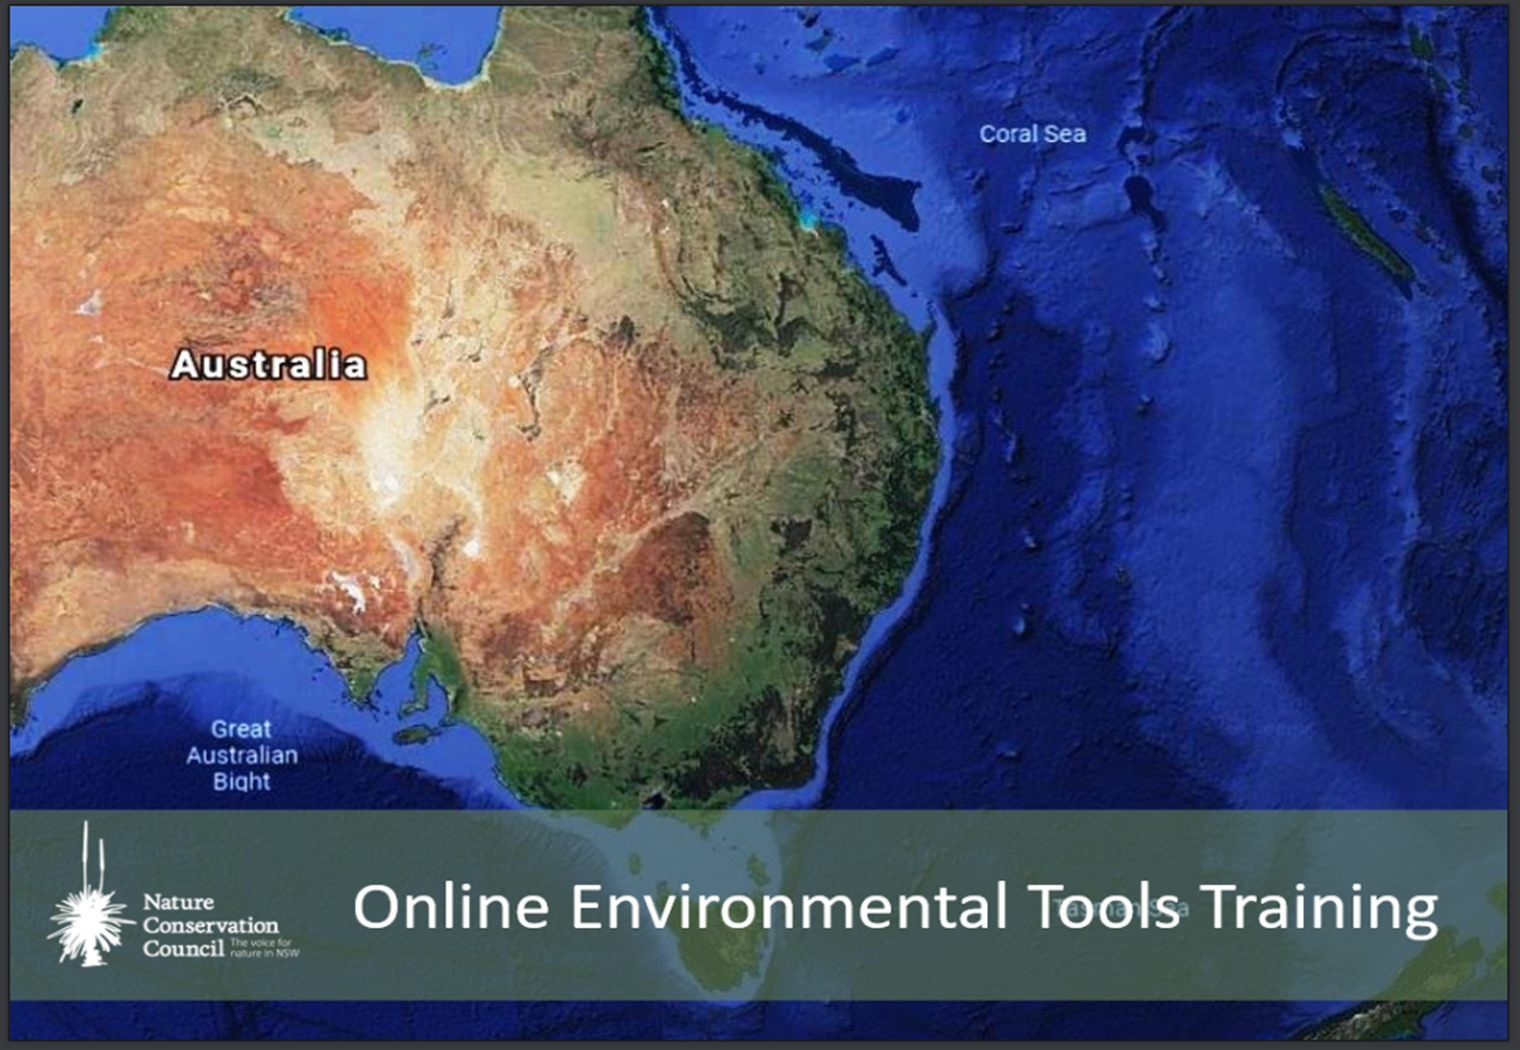 Online Environmental Tools Videos